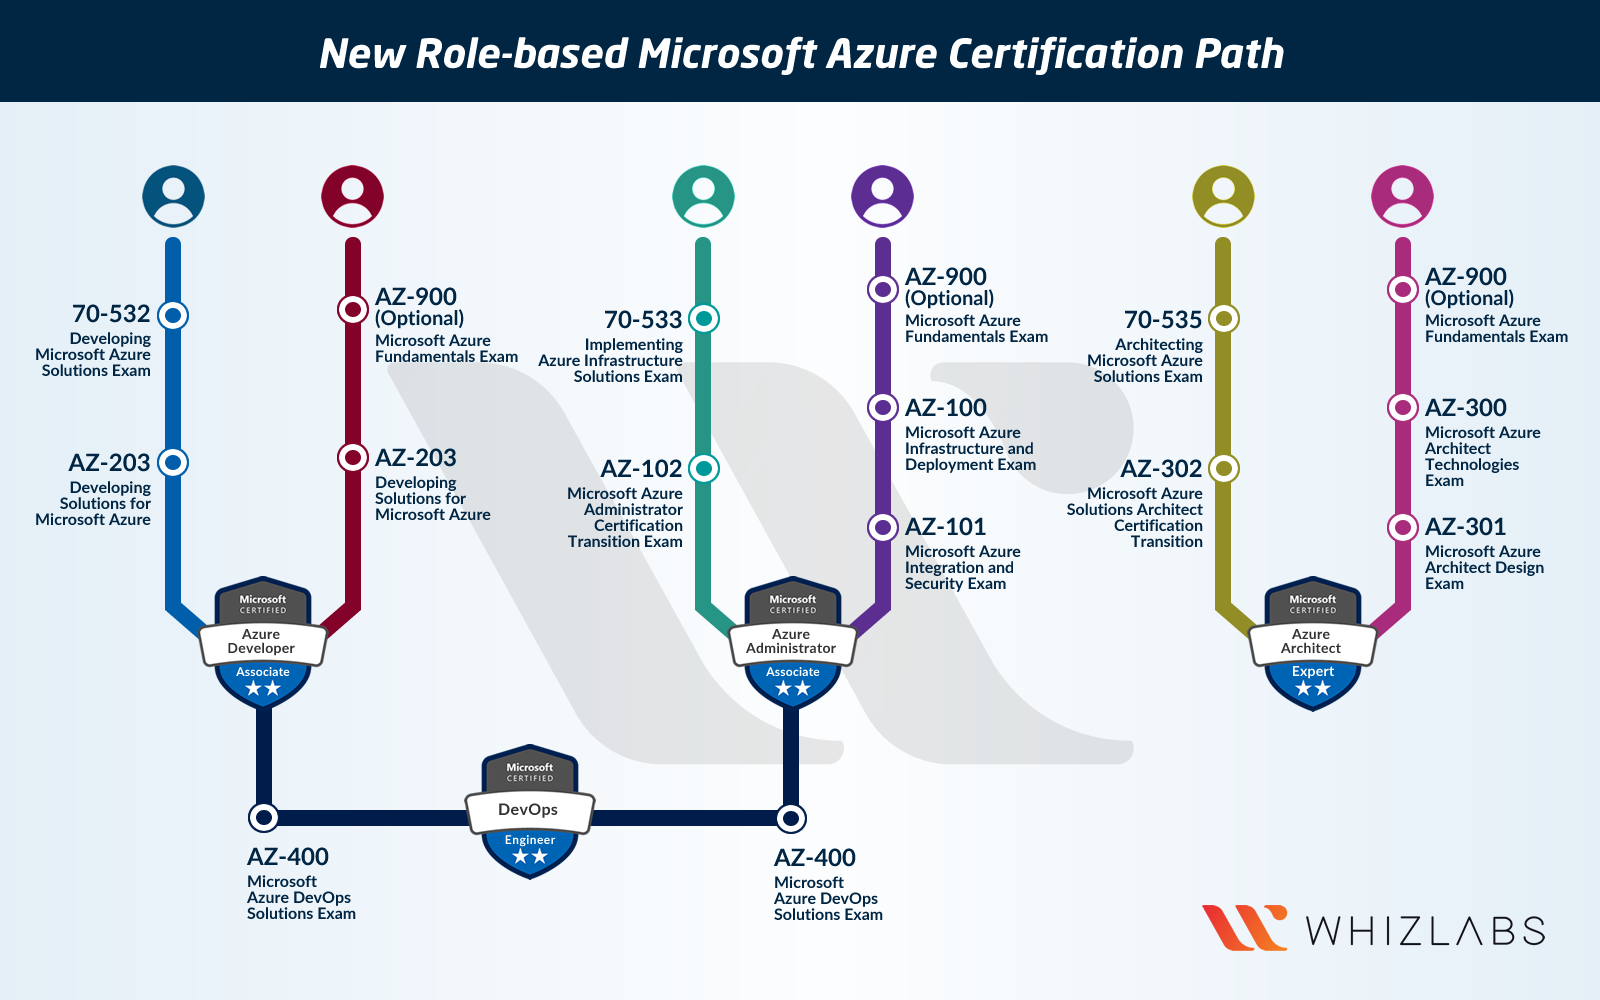 New Microsoft Azure Certifications Path